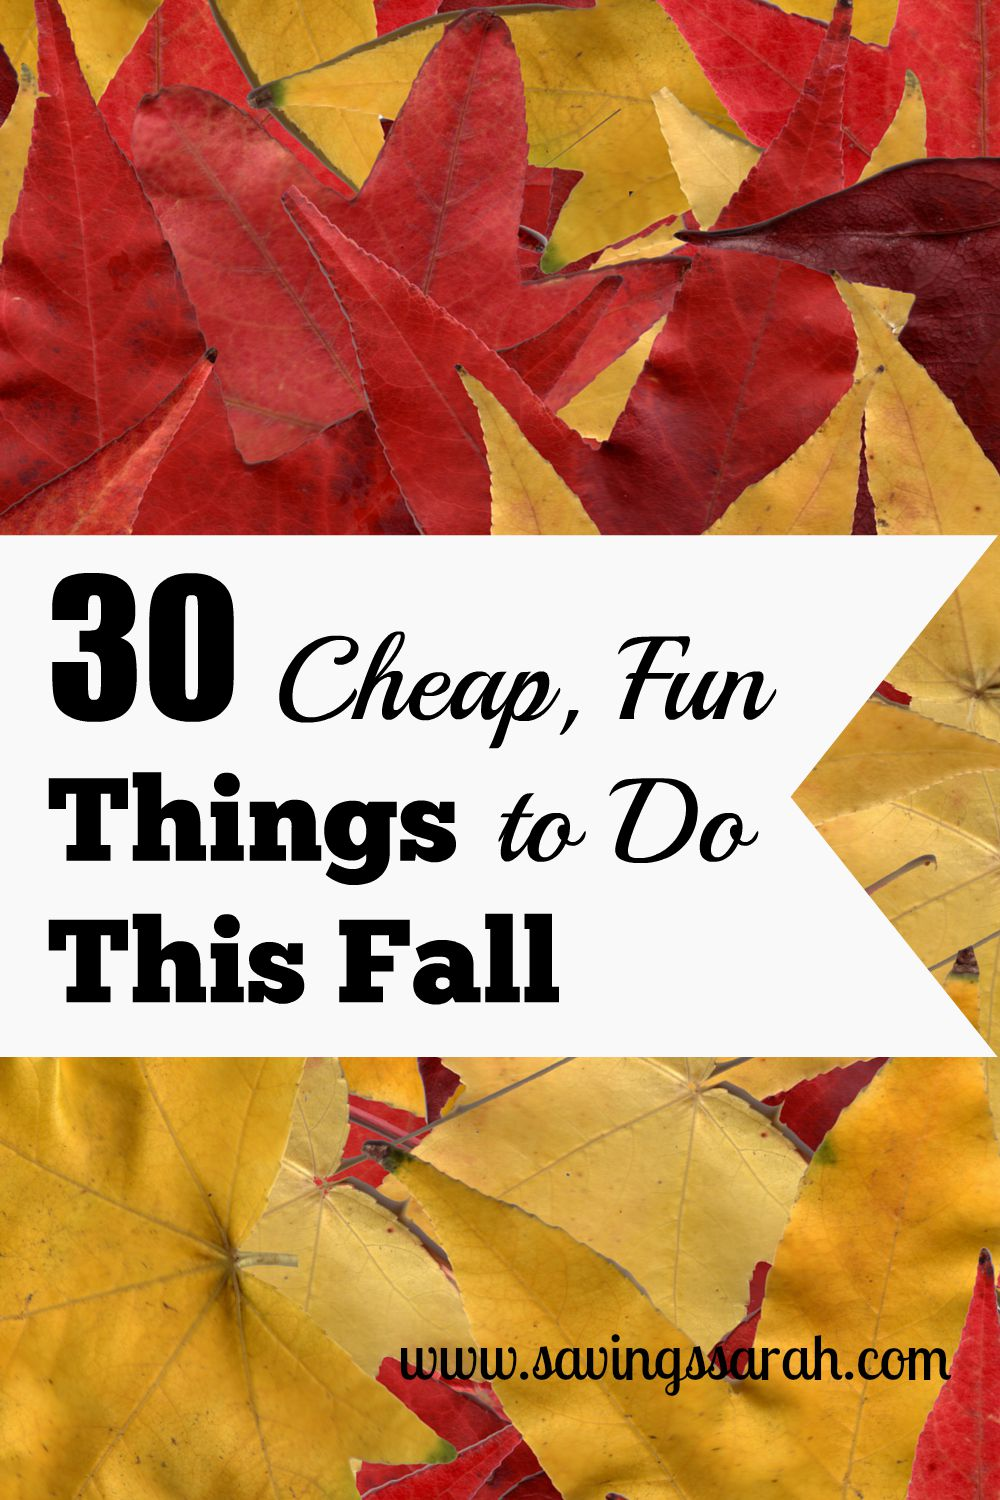 30 Cheap, Fun Things to Do This Fall - Earning and Saving with Sarah